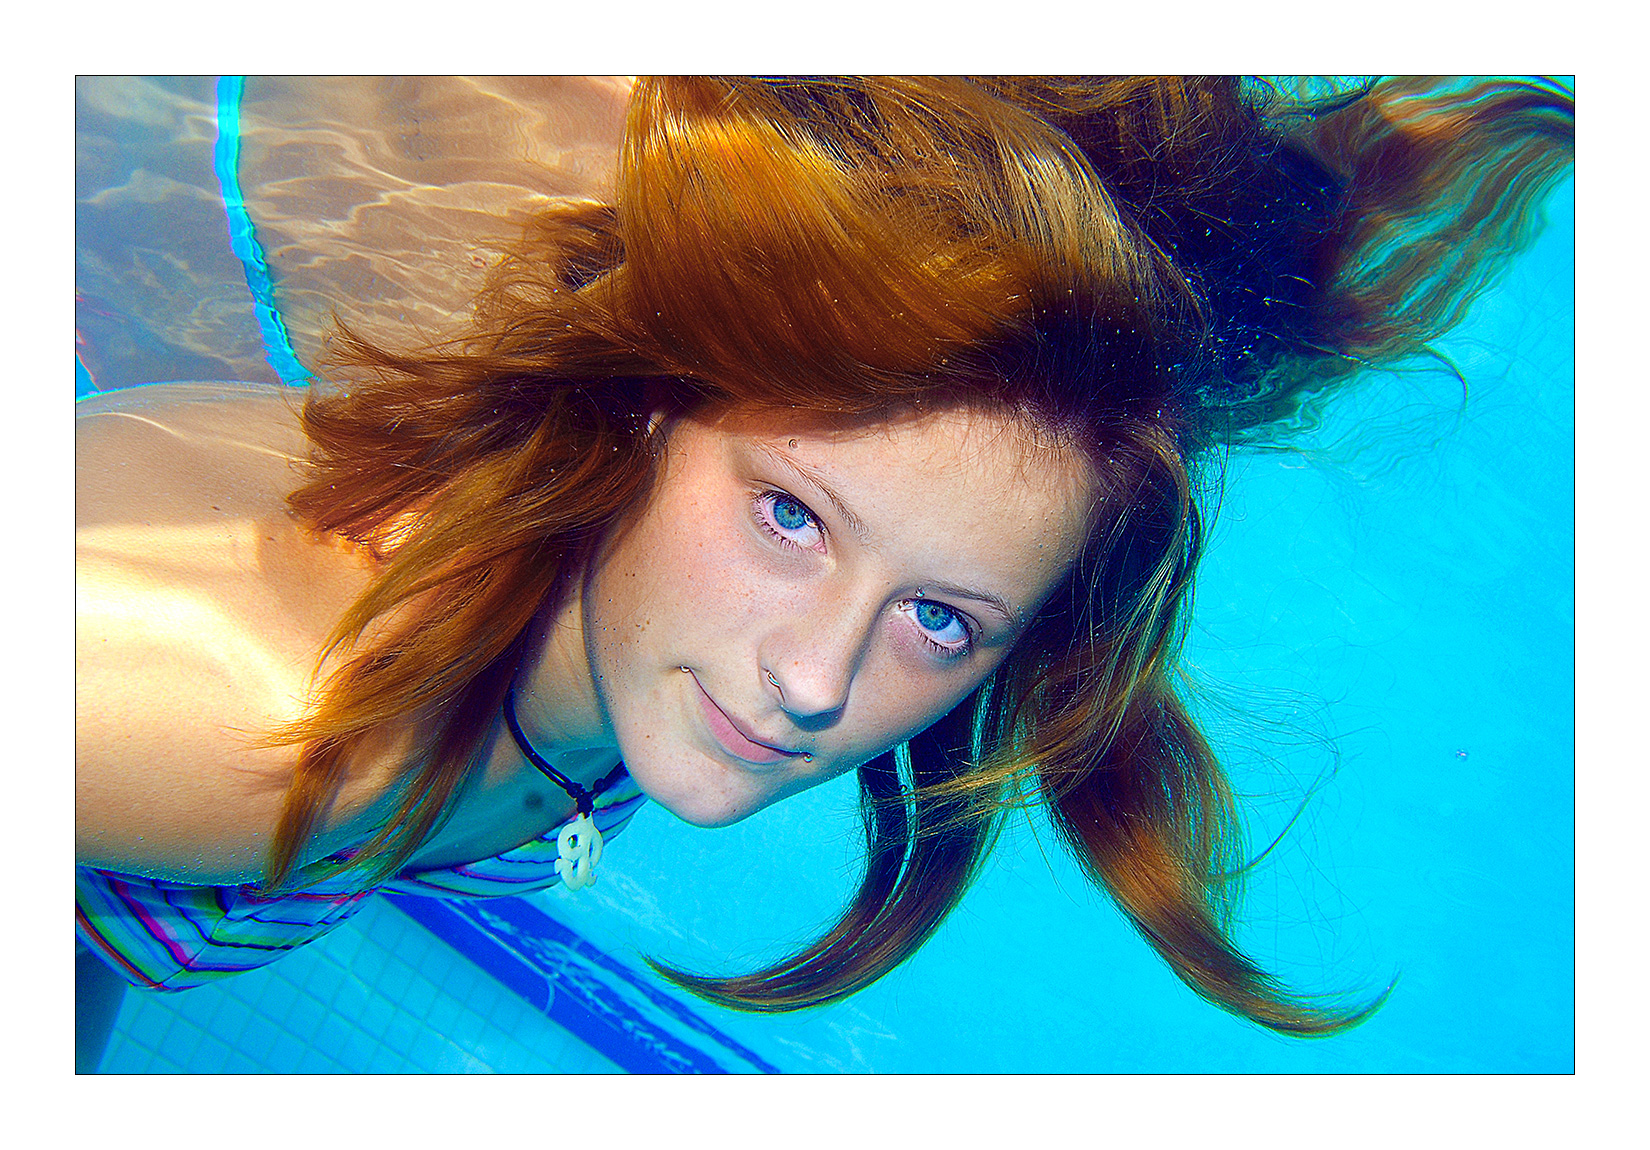 portrait-aquatique-piscine-mode-fille-photo-frontignan